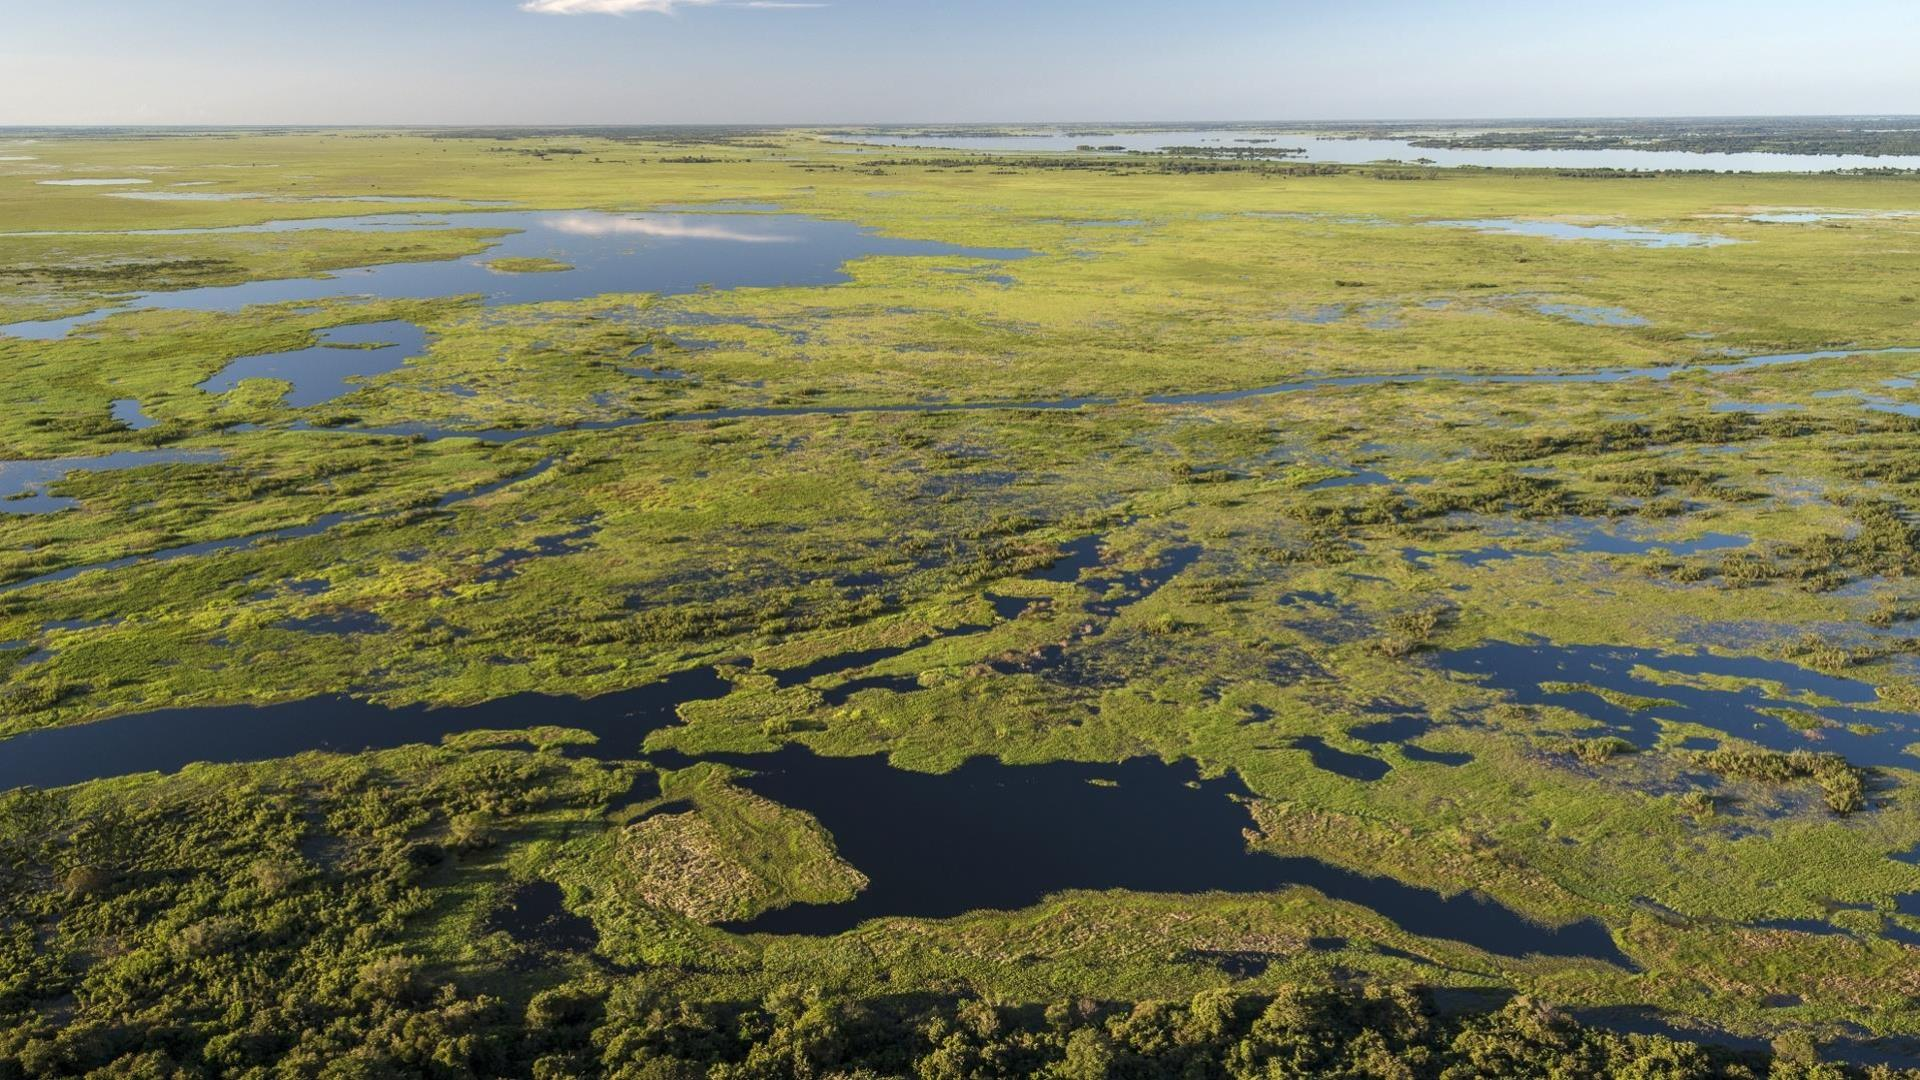 Aerial view of the Wetlands near to Pousada Piuval, Brazil - North Pantanal